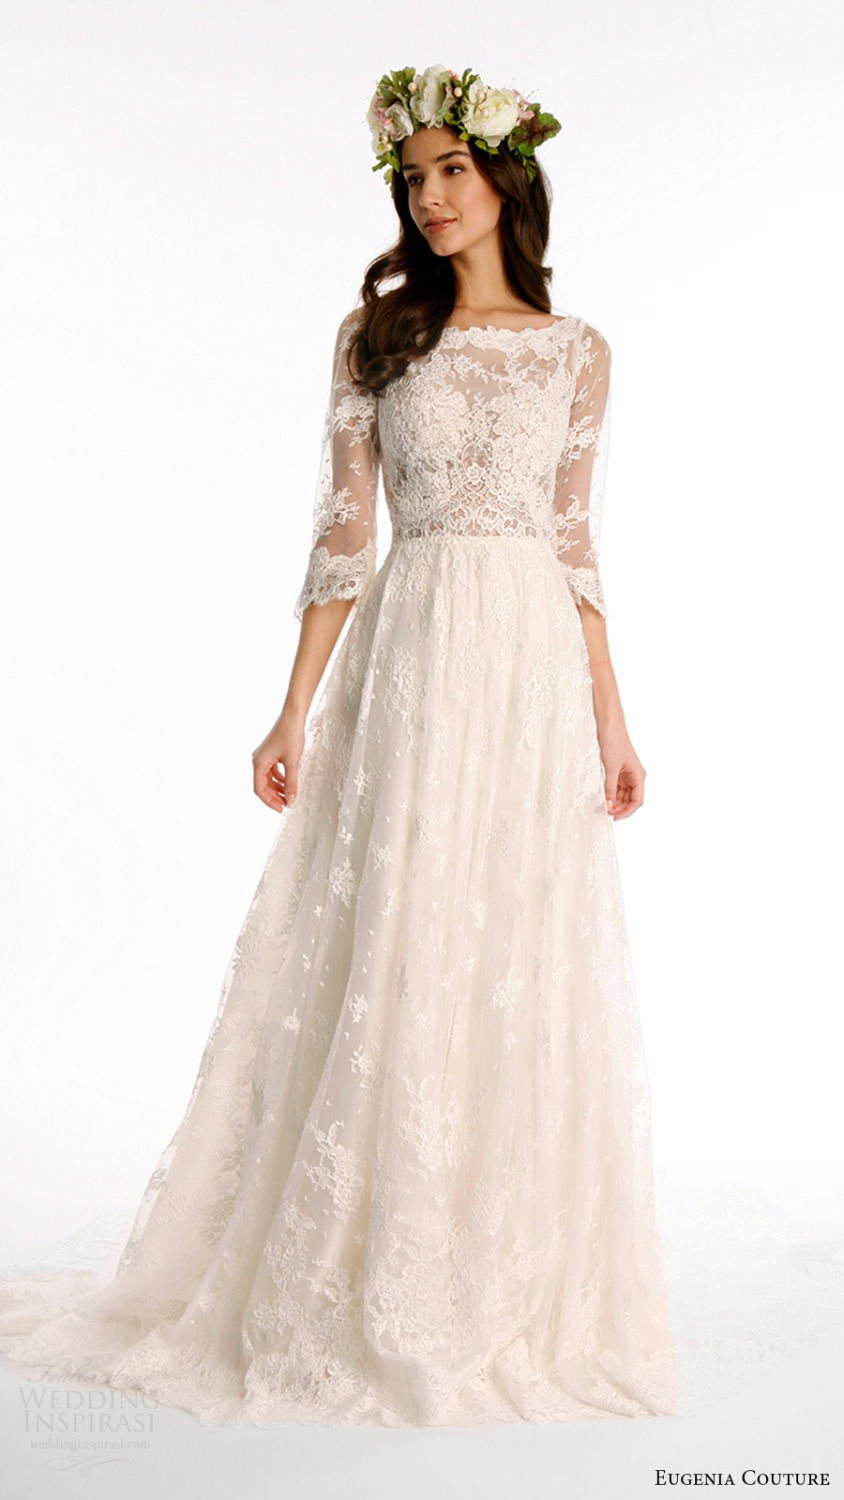 Boho Wedding Dress S Perth : Boho bridal dresses wedding gown in from weddings